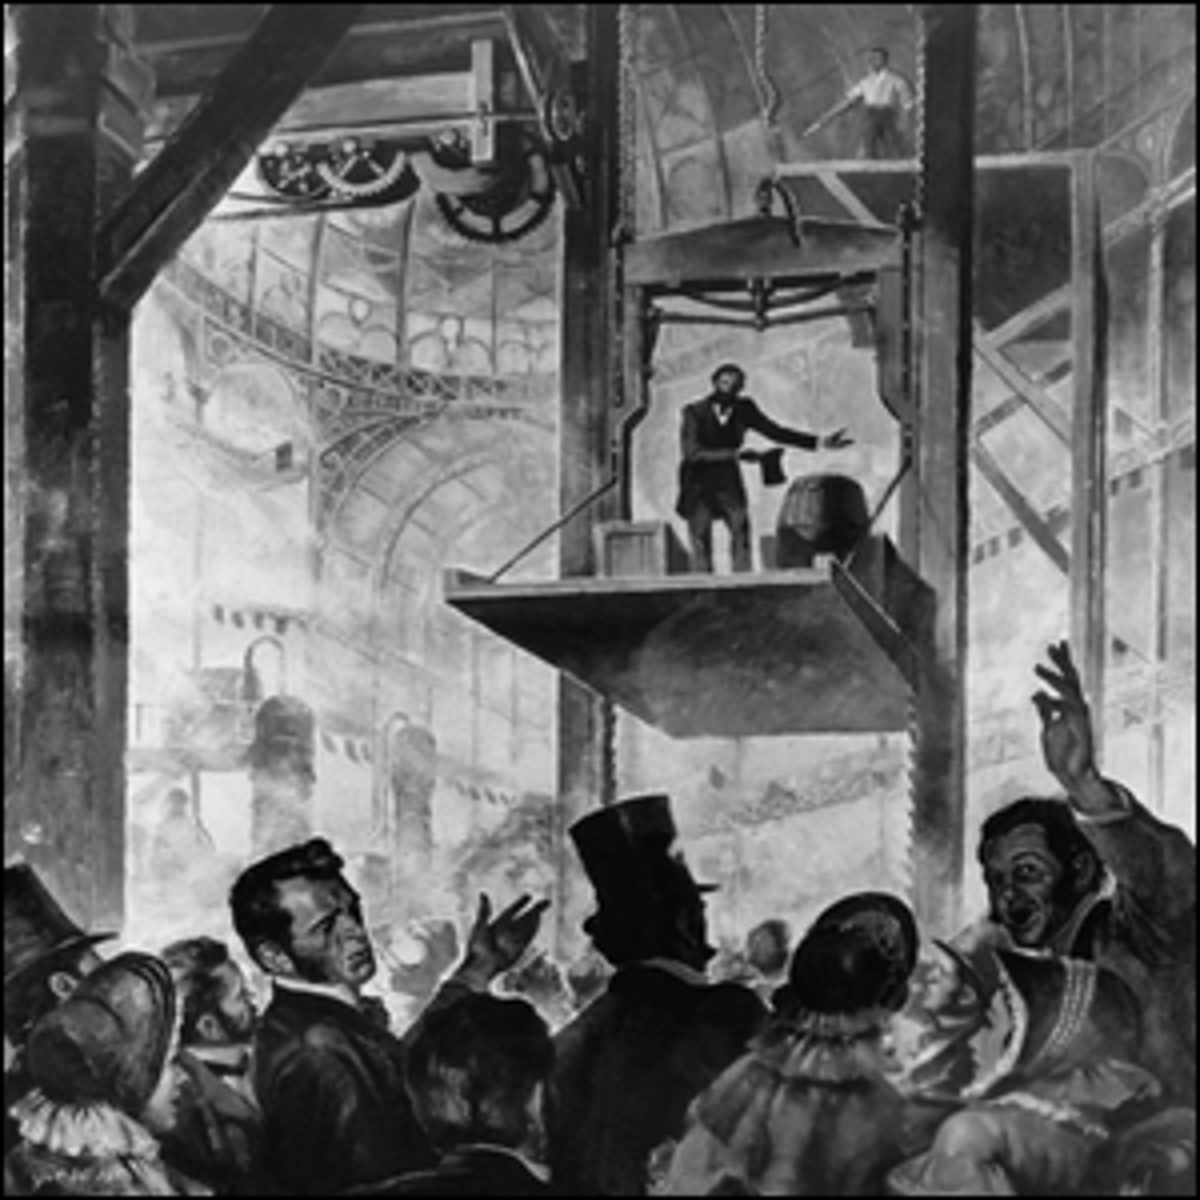 An illustration of Elisha Otis' demo of his free-fall prevention mechanism in 1854.